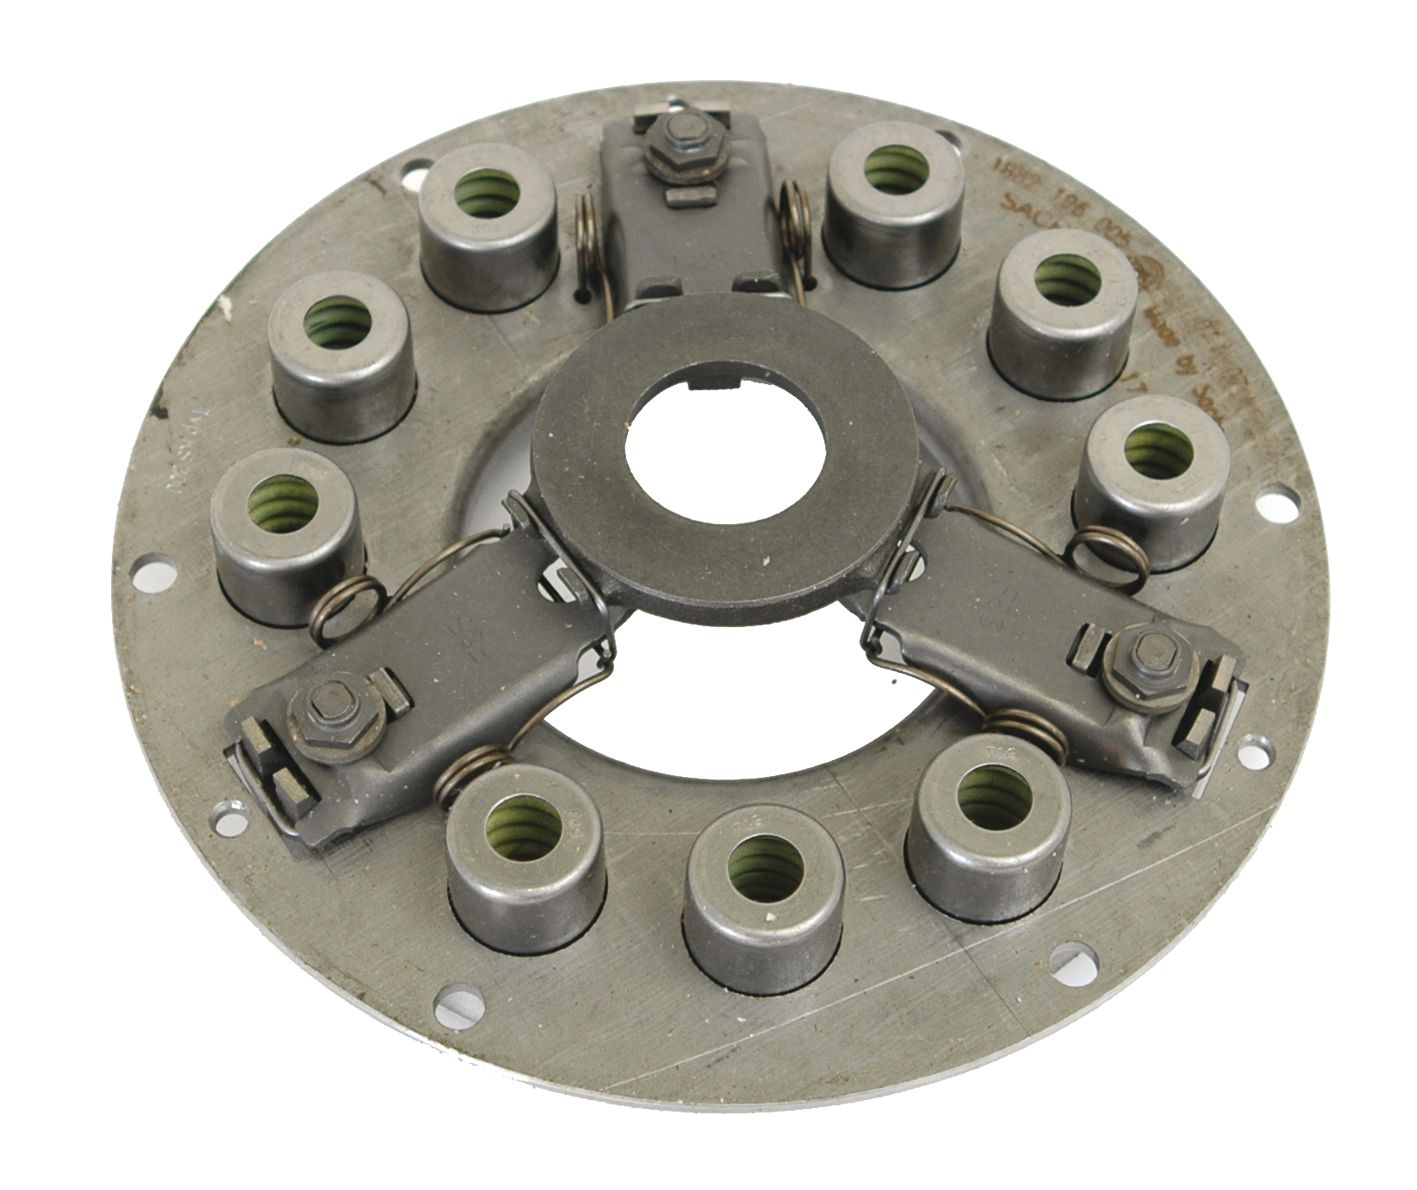 FENDT CLUTCH COVER ASSEMBLY 1882196005